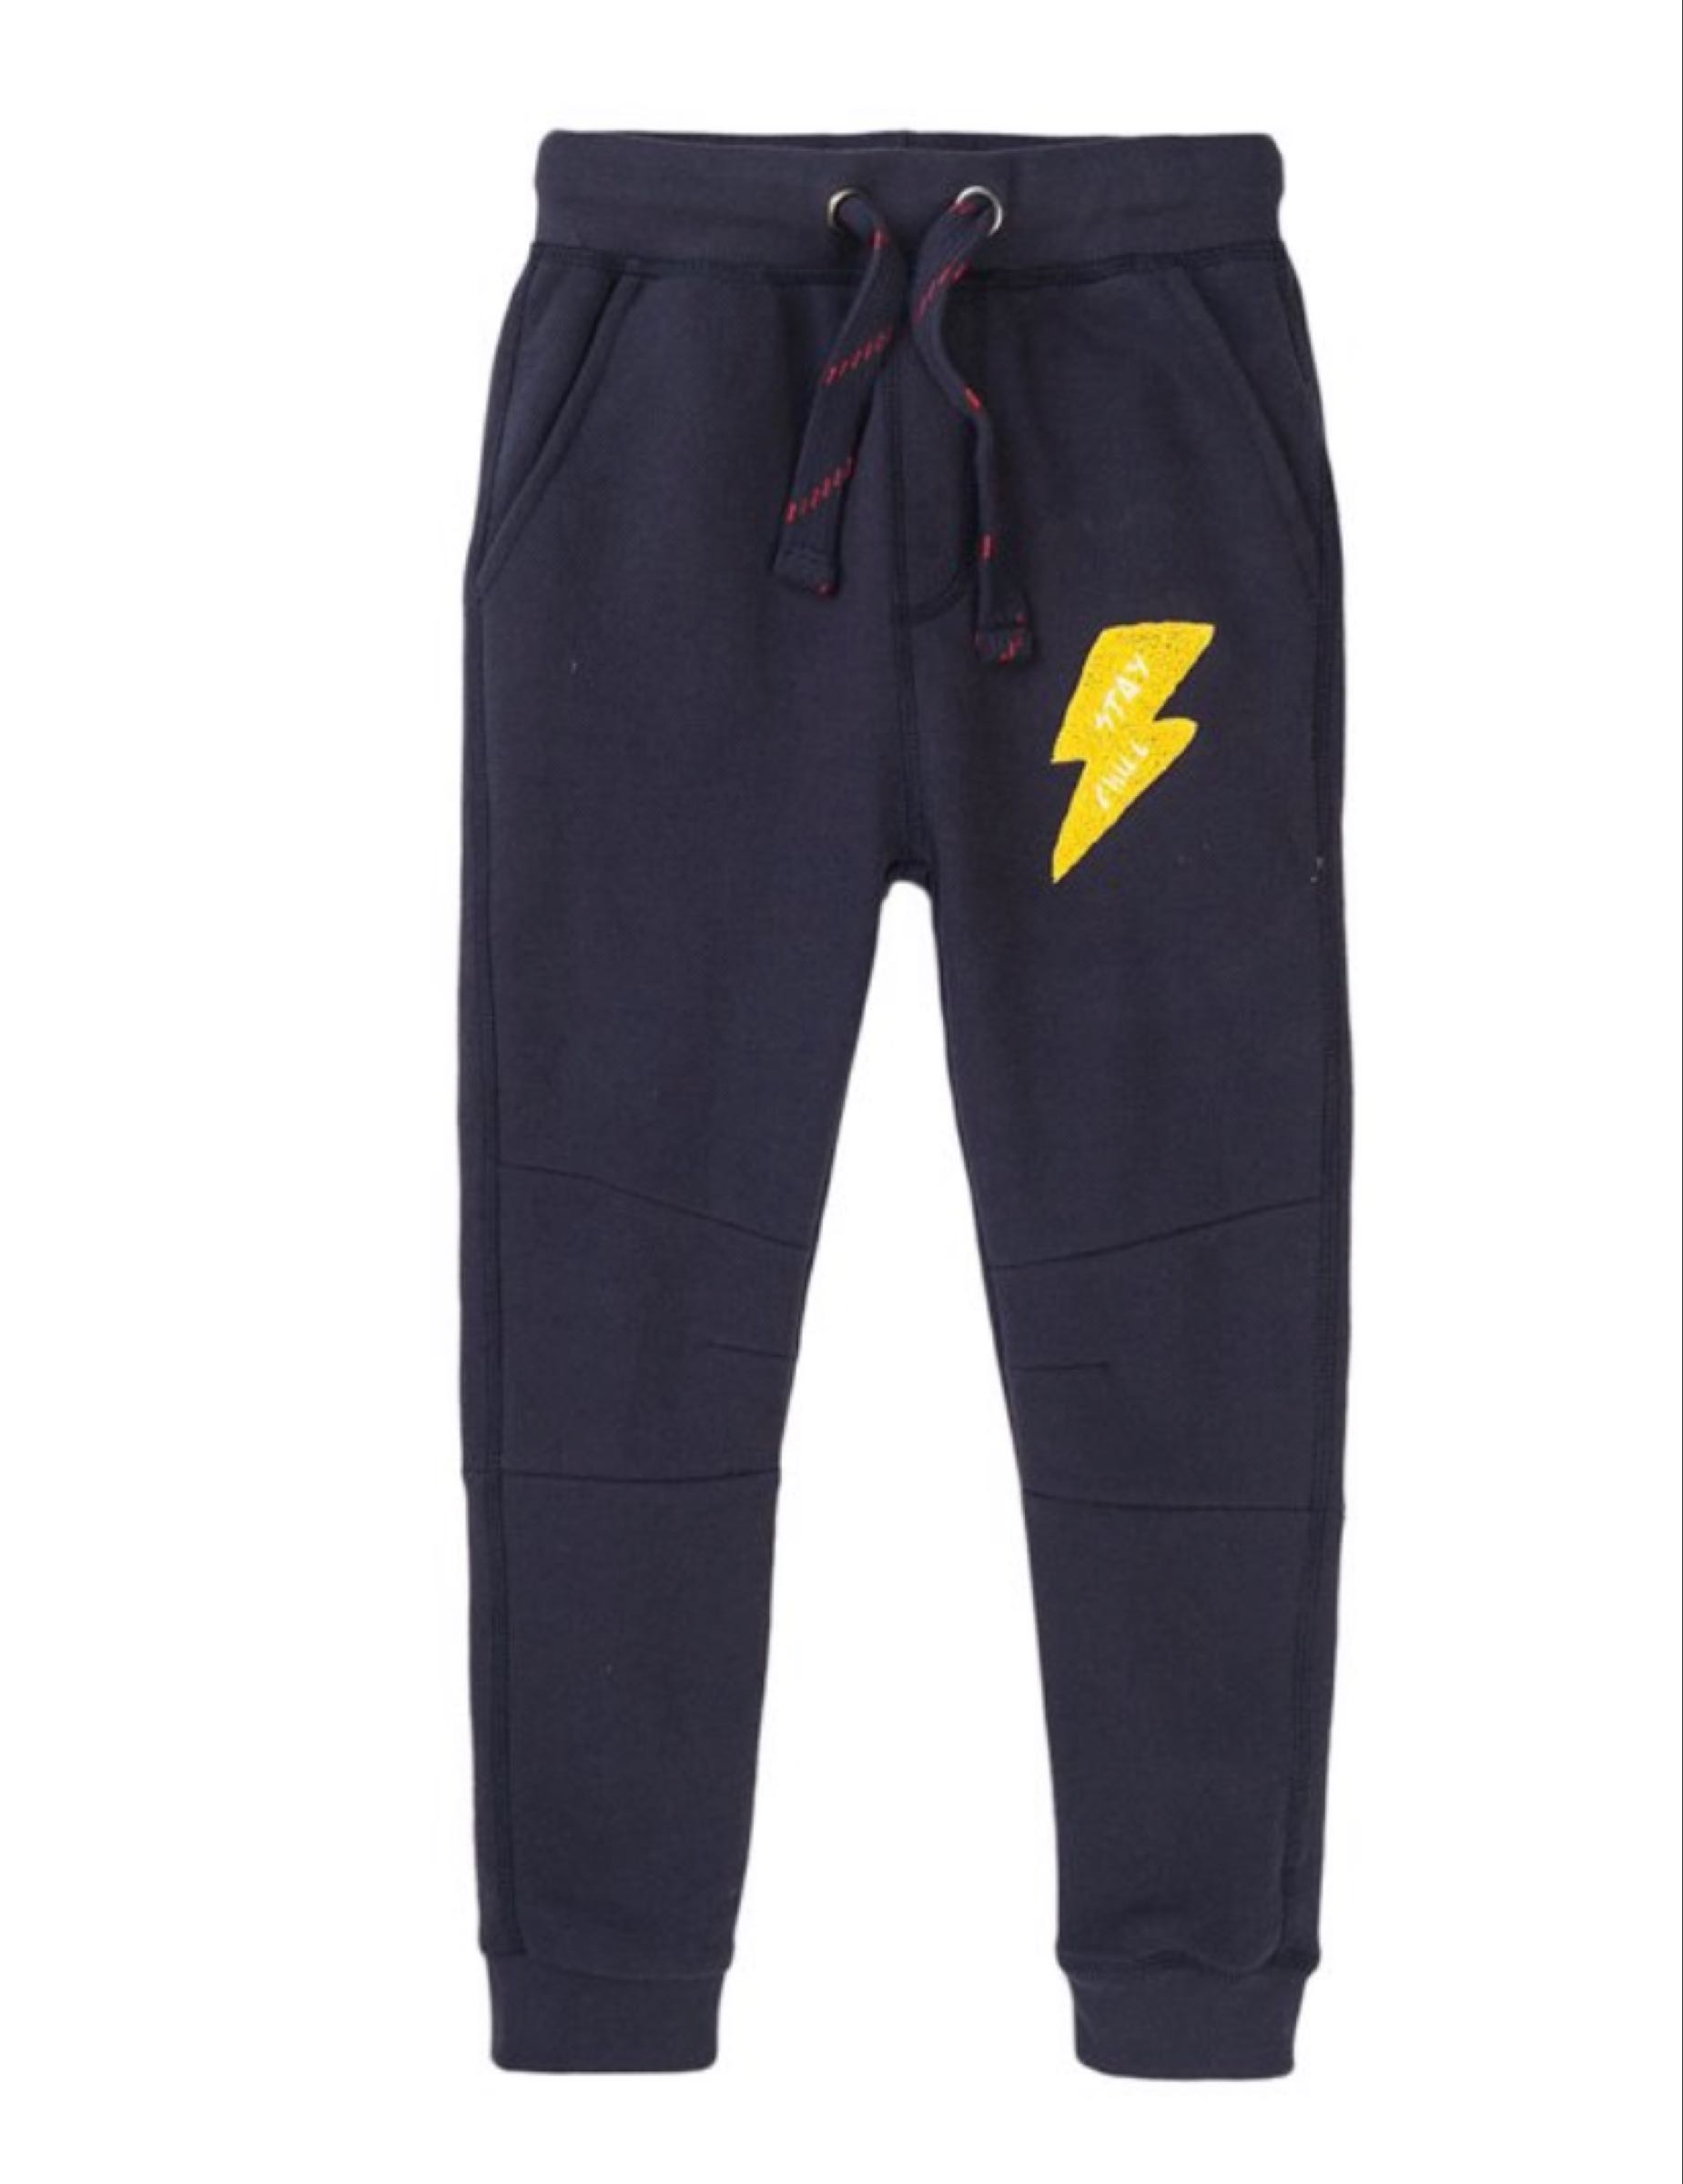 Lightening jog  pants